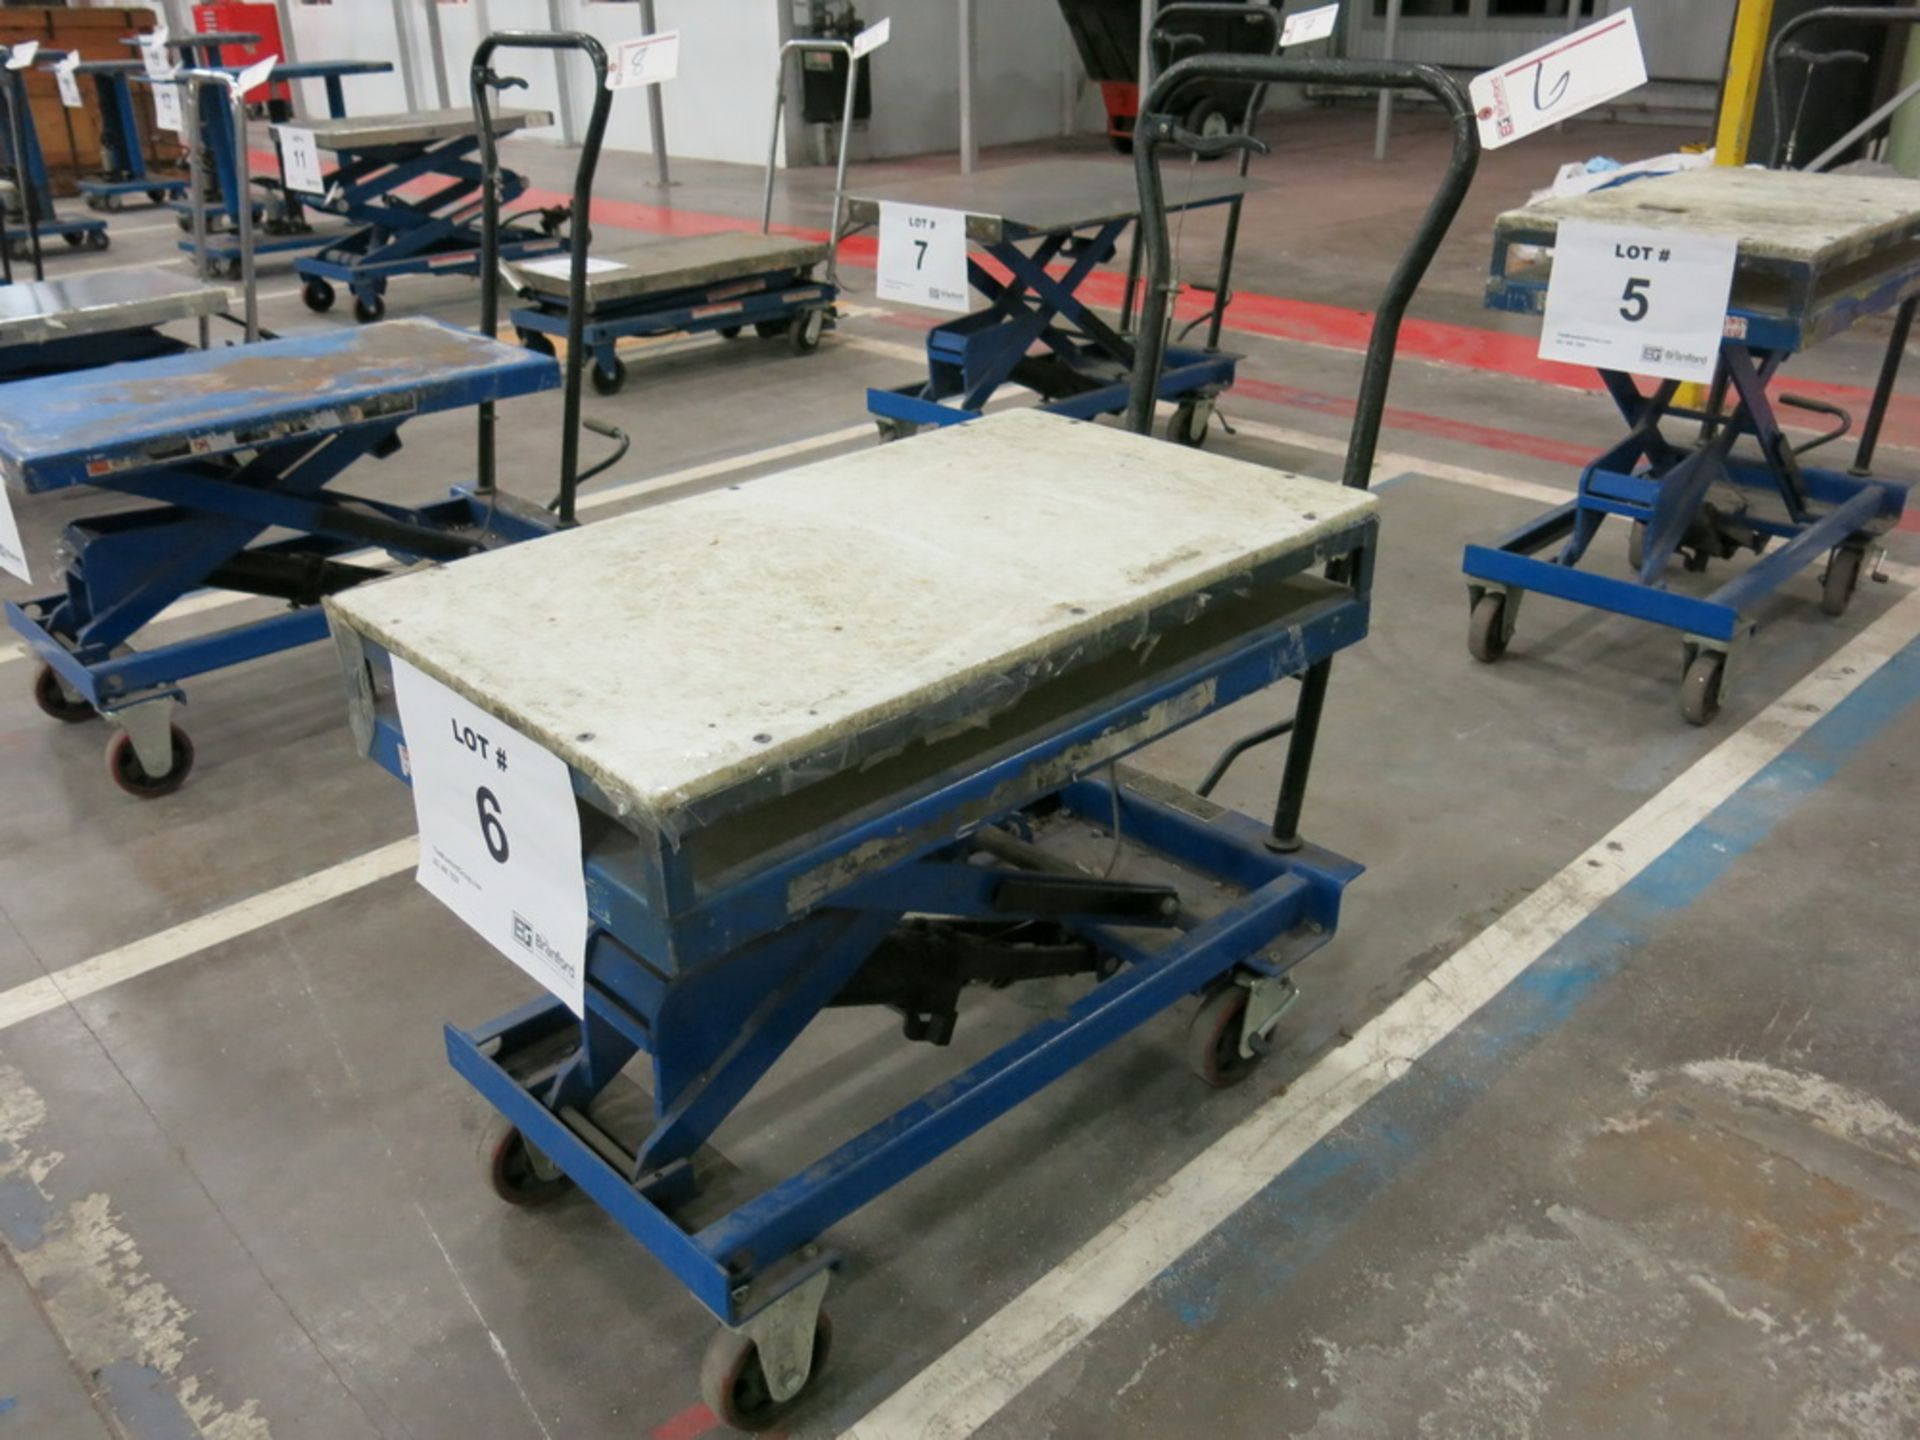 Lot 6 - Lift Table, 1100 lb Cap. Hydraulic Die Lift Cart w/ Polypropylene Top